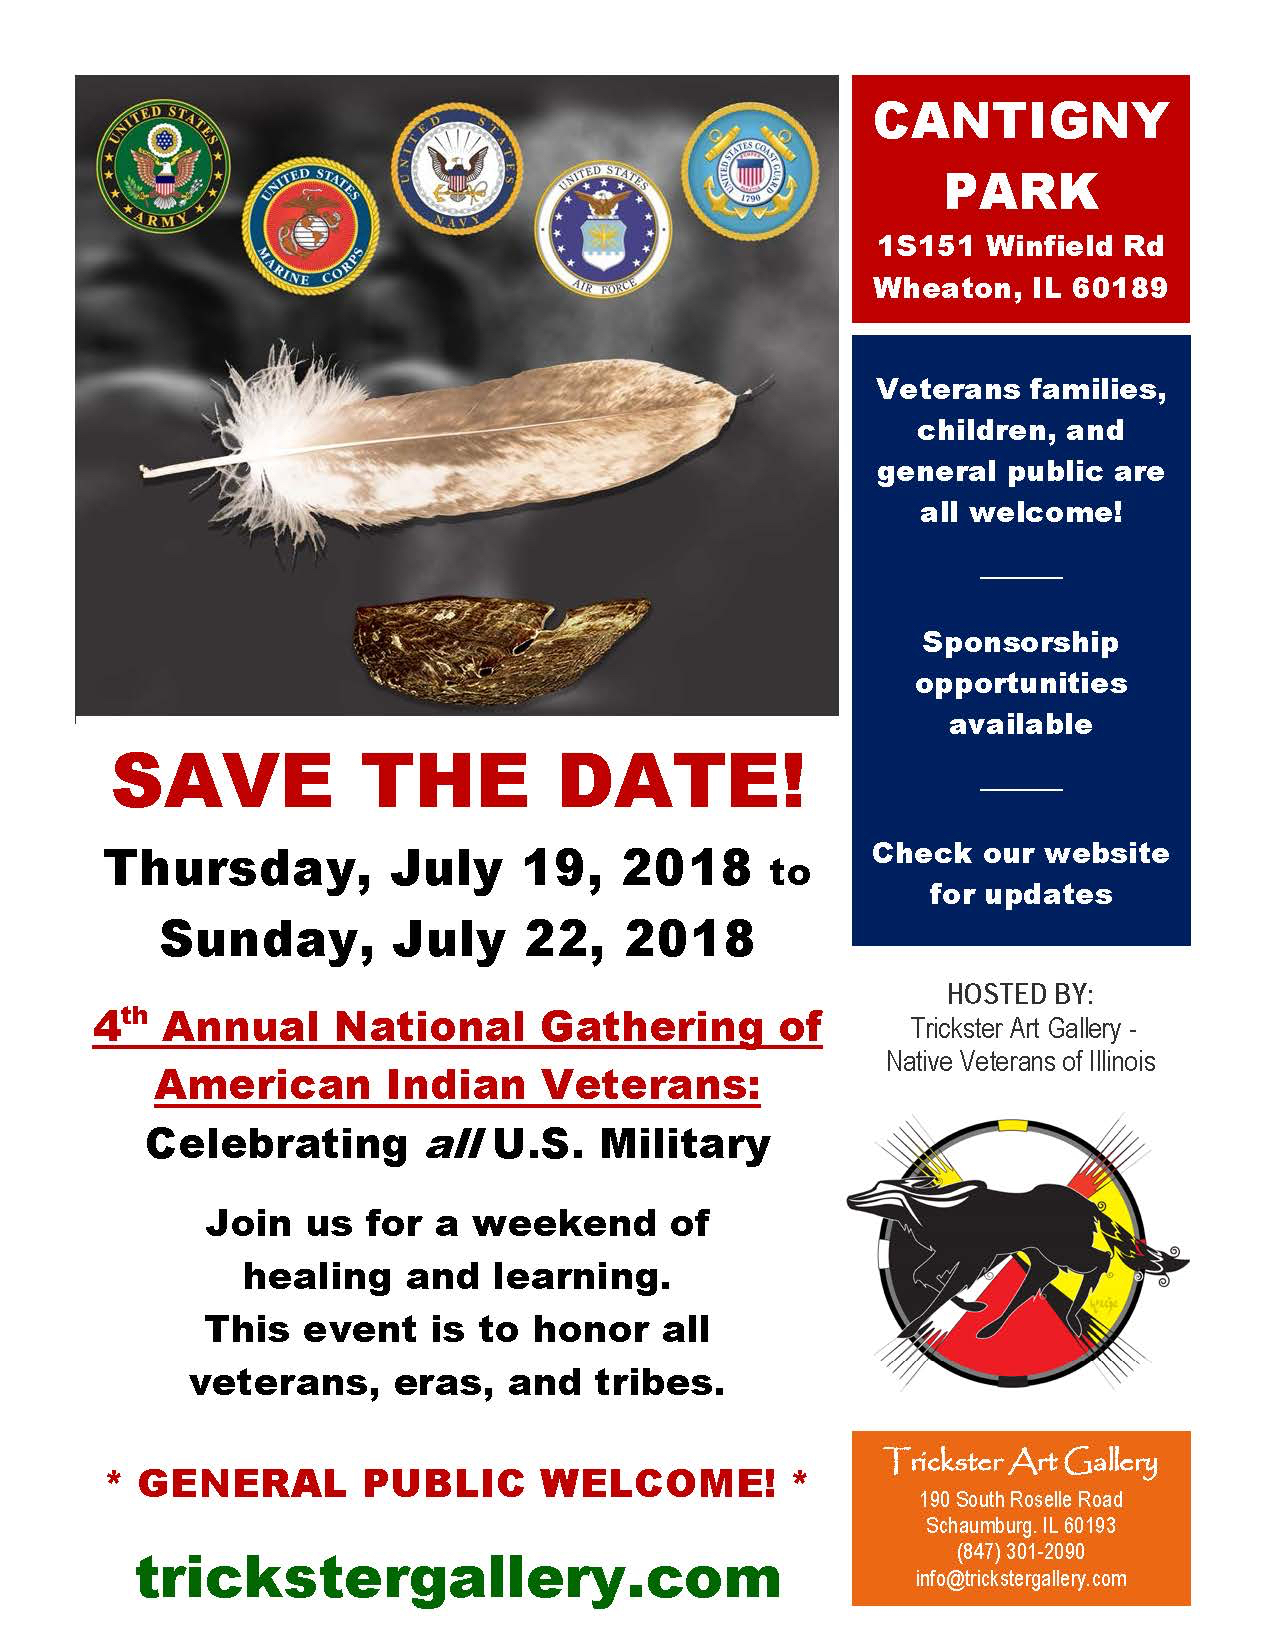 http://kevinlocke.com/wp-content/uploads/TAG-SAVE-THE-DATE-National-Veteran-2018.jpg